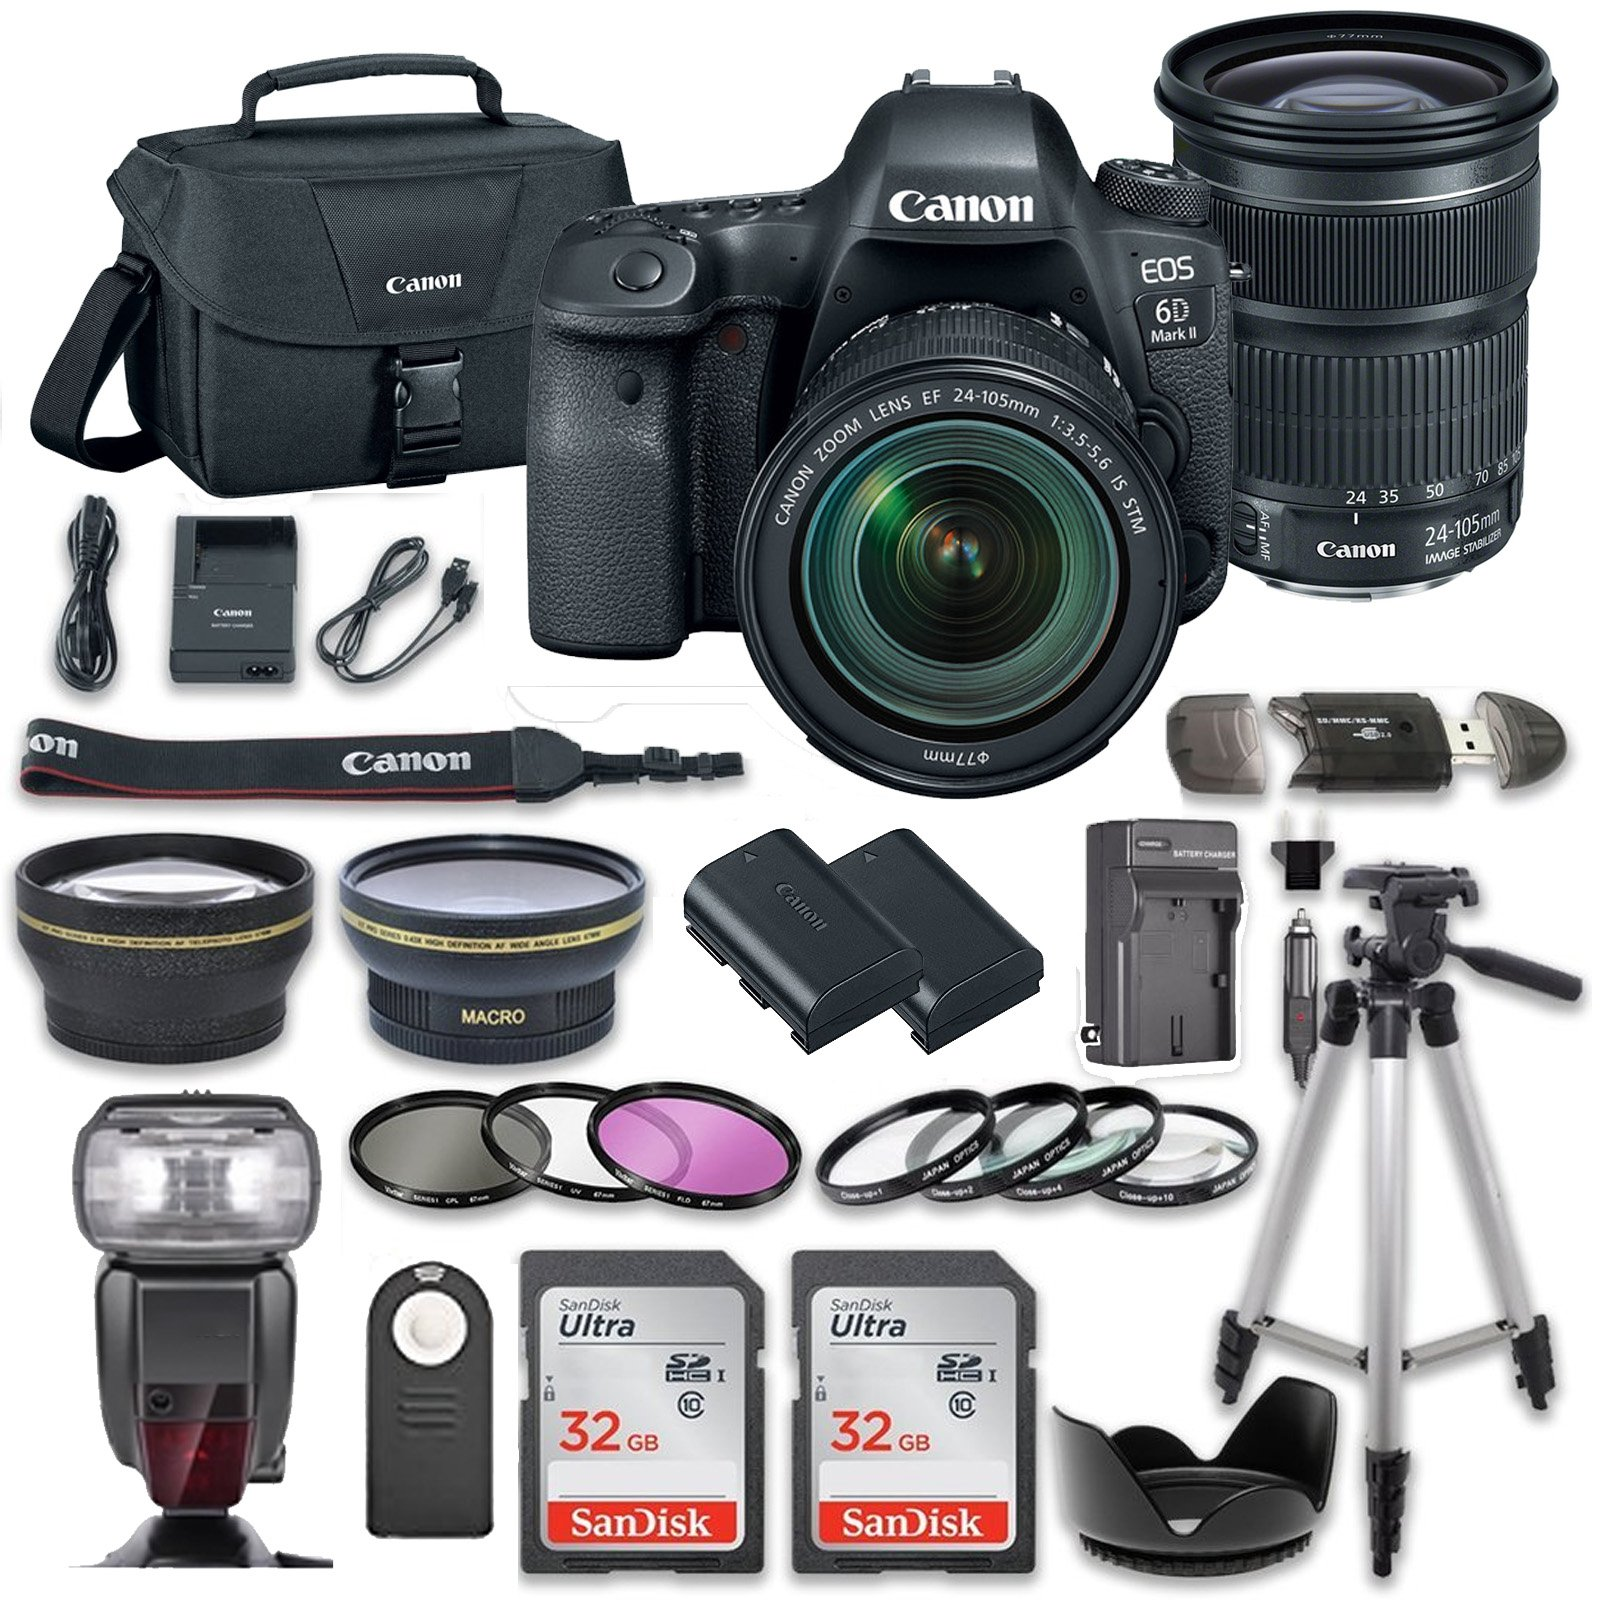 Canon EOS 6D MARK II DSLR Camera Bundle with Canon EF 24-105mm f/3.5-5.6 IS STM Lens + 2pc SanDisk 32GB Memory Cards + Premium Accessory Bundle Kit (19 Items) by Canon